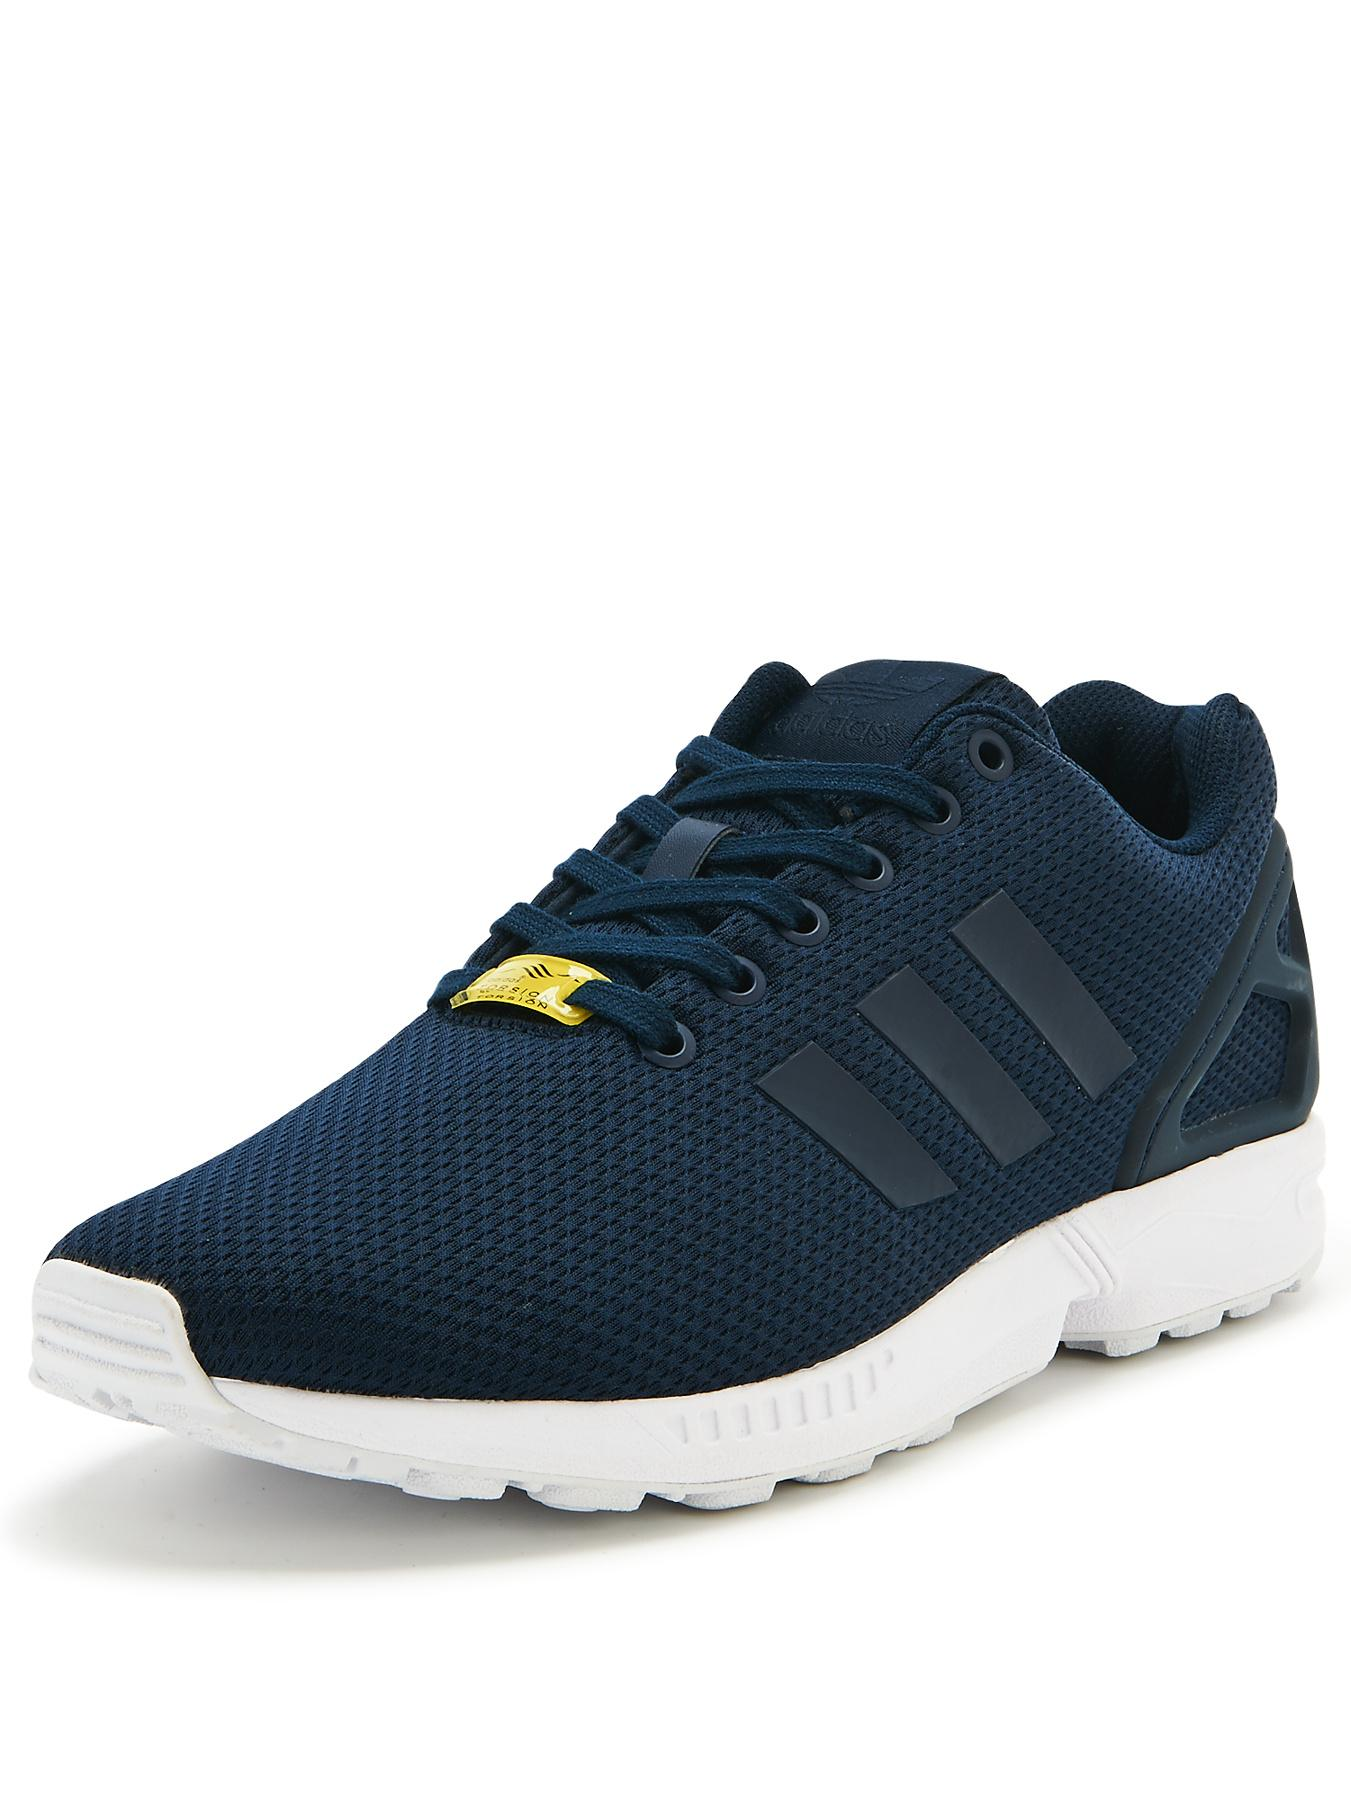 mens adidas original trainers